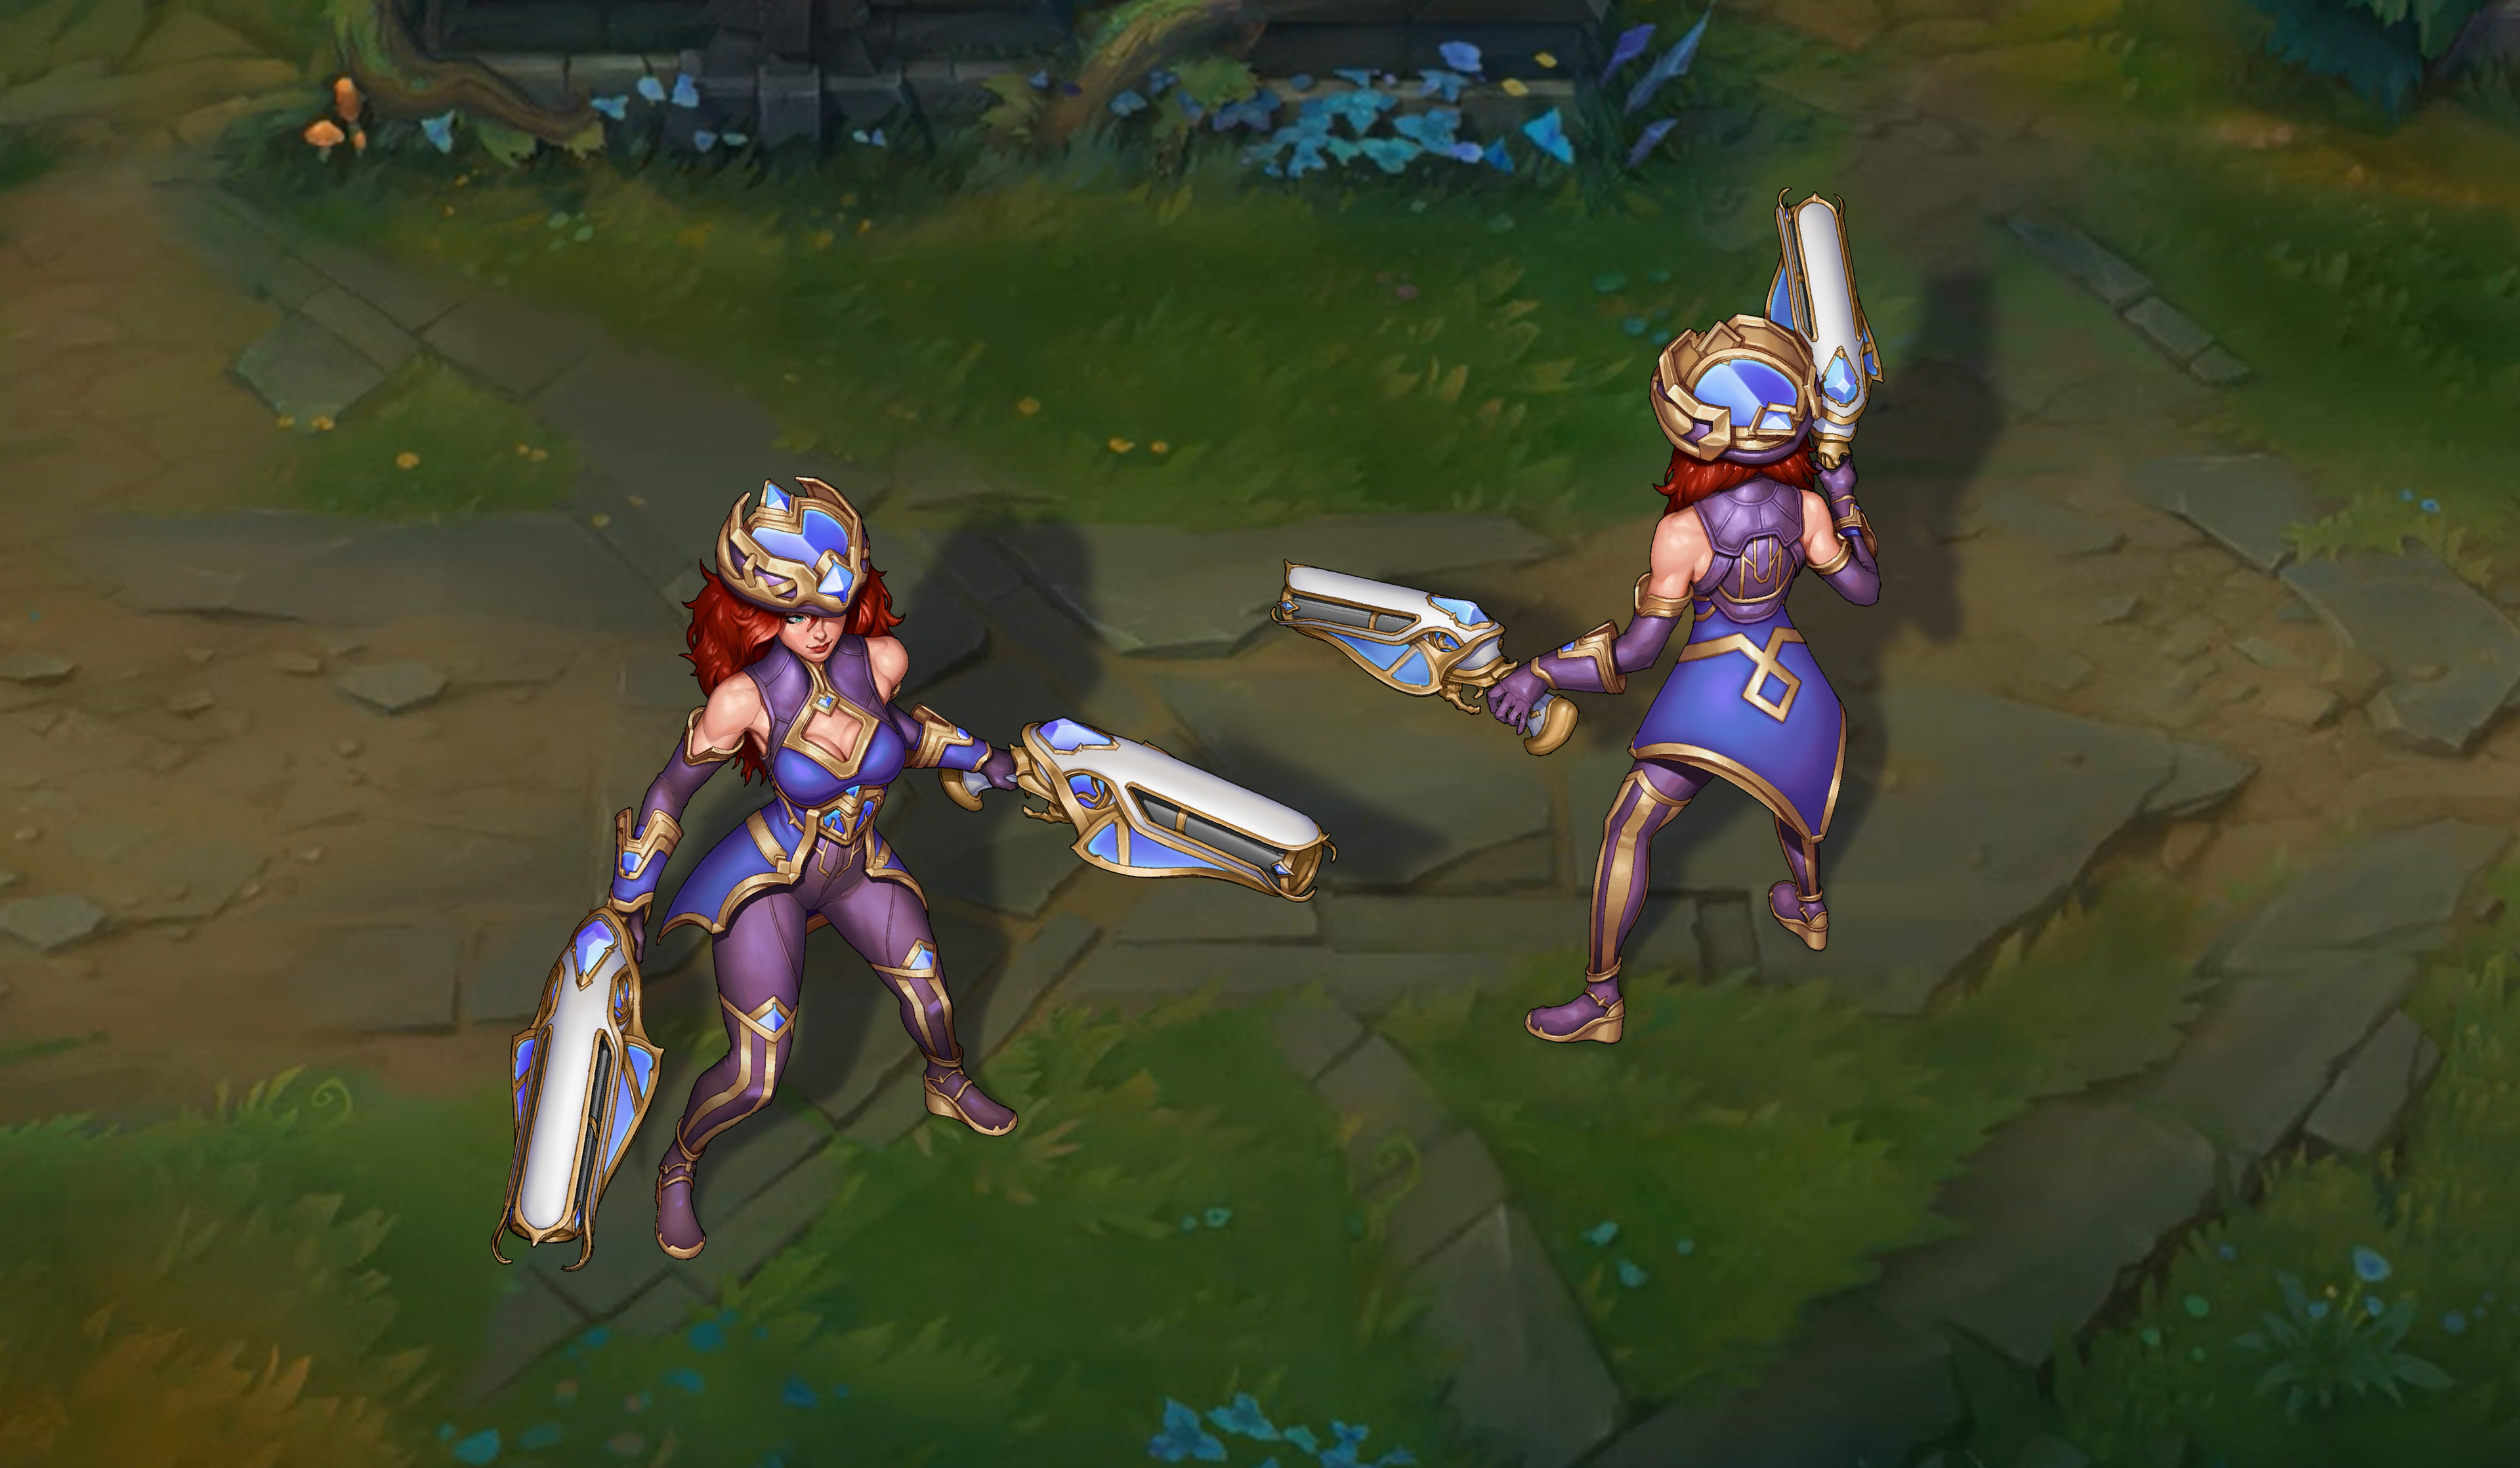 Final design.  Went with the more obviously hextech color scheme and simplified the details.